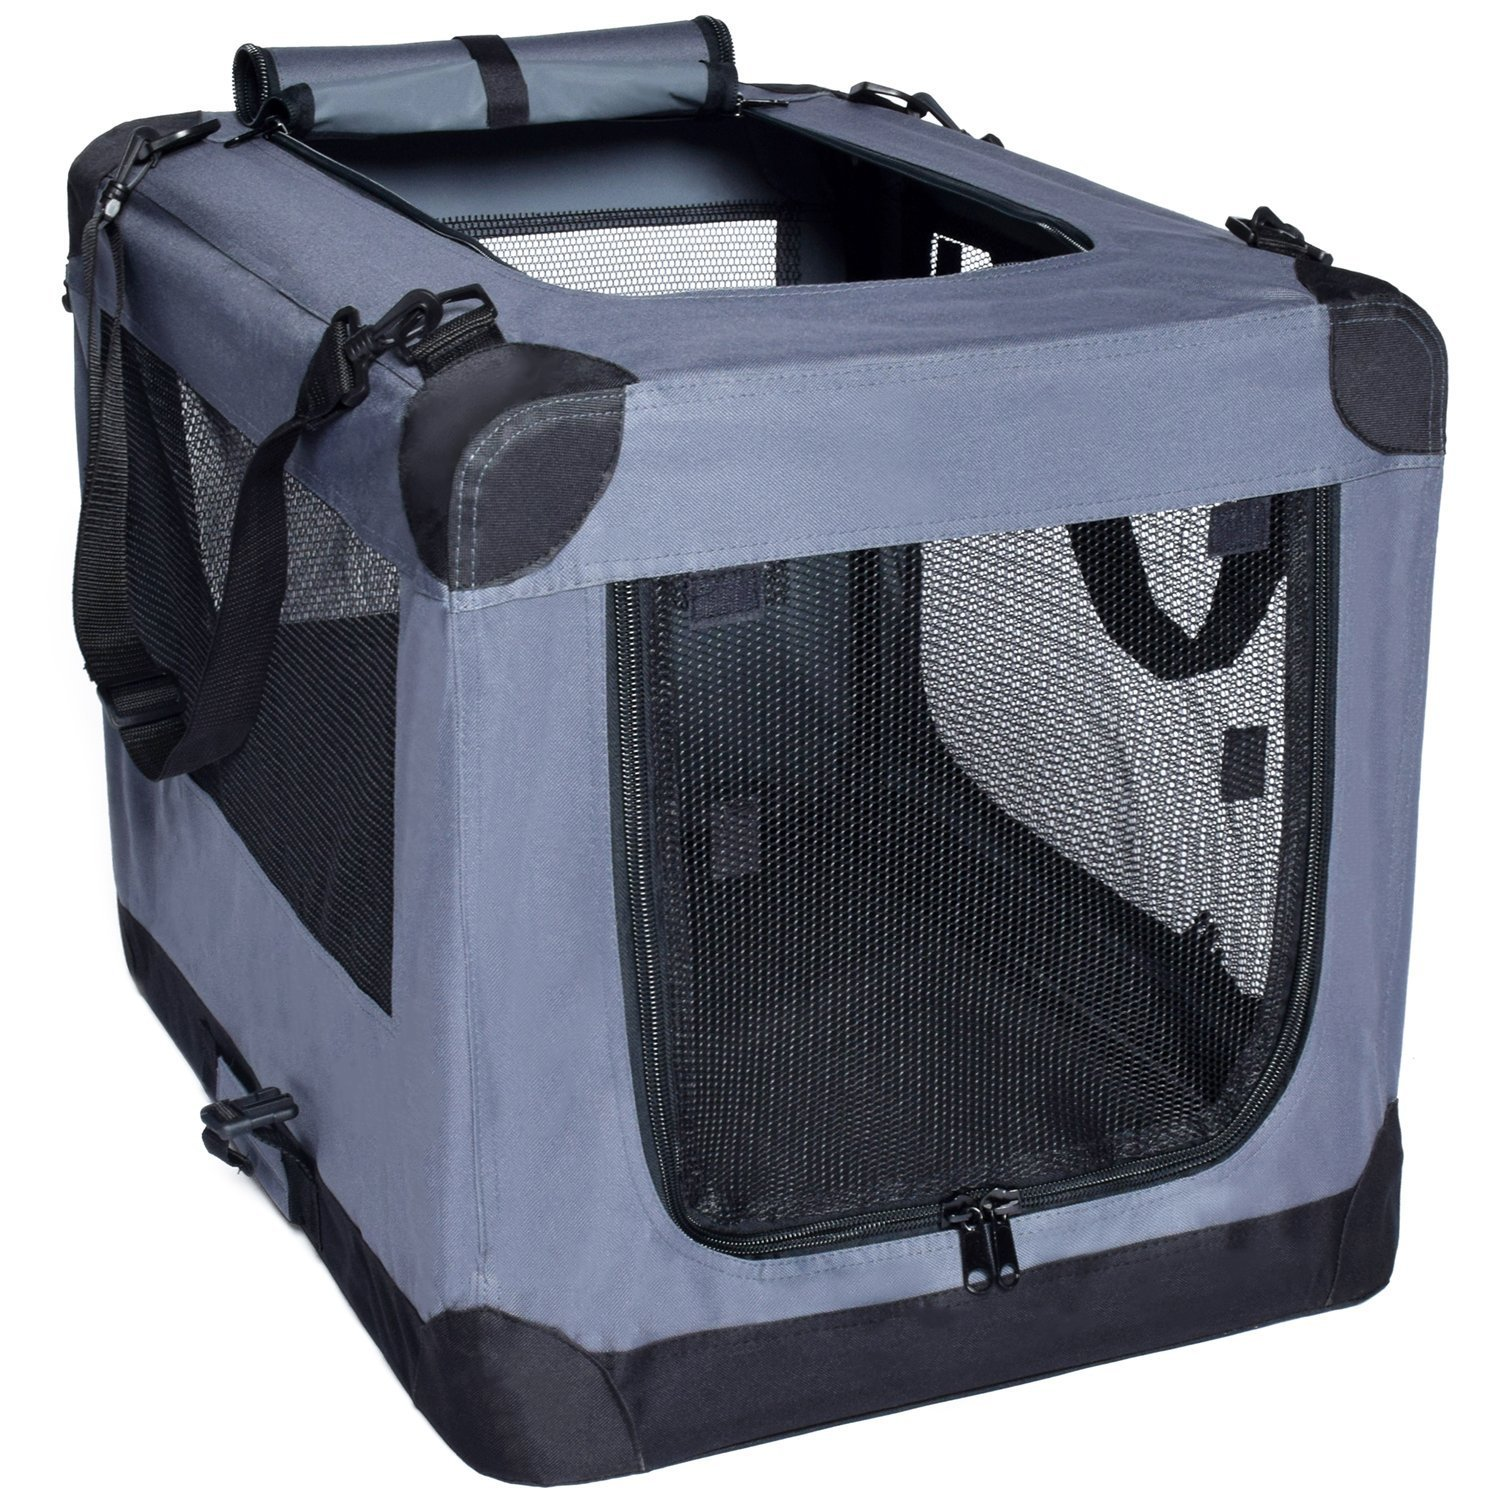 Dog Soft Crate 27 Inch Kennel for Pet Indoor Home & Outdoor Use - Soft Sided 3 Door Folding Travel Carrier with Straps - Arf Pets by Arf Pets